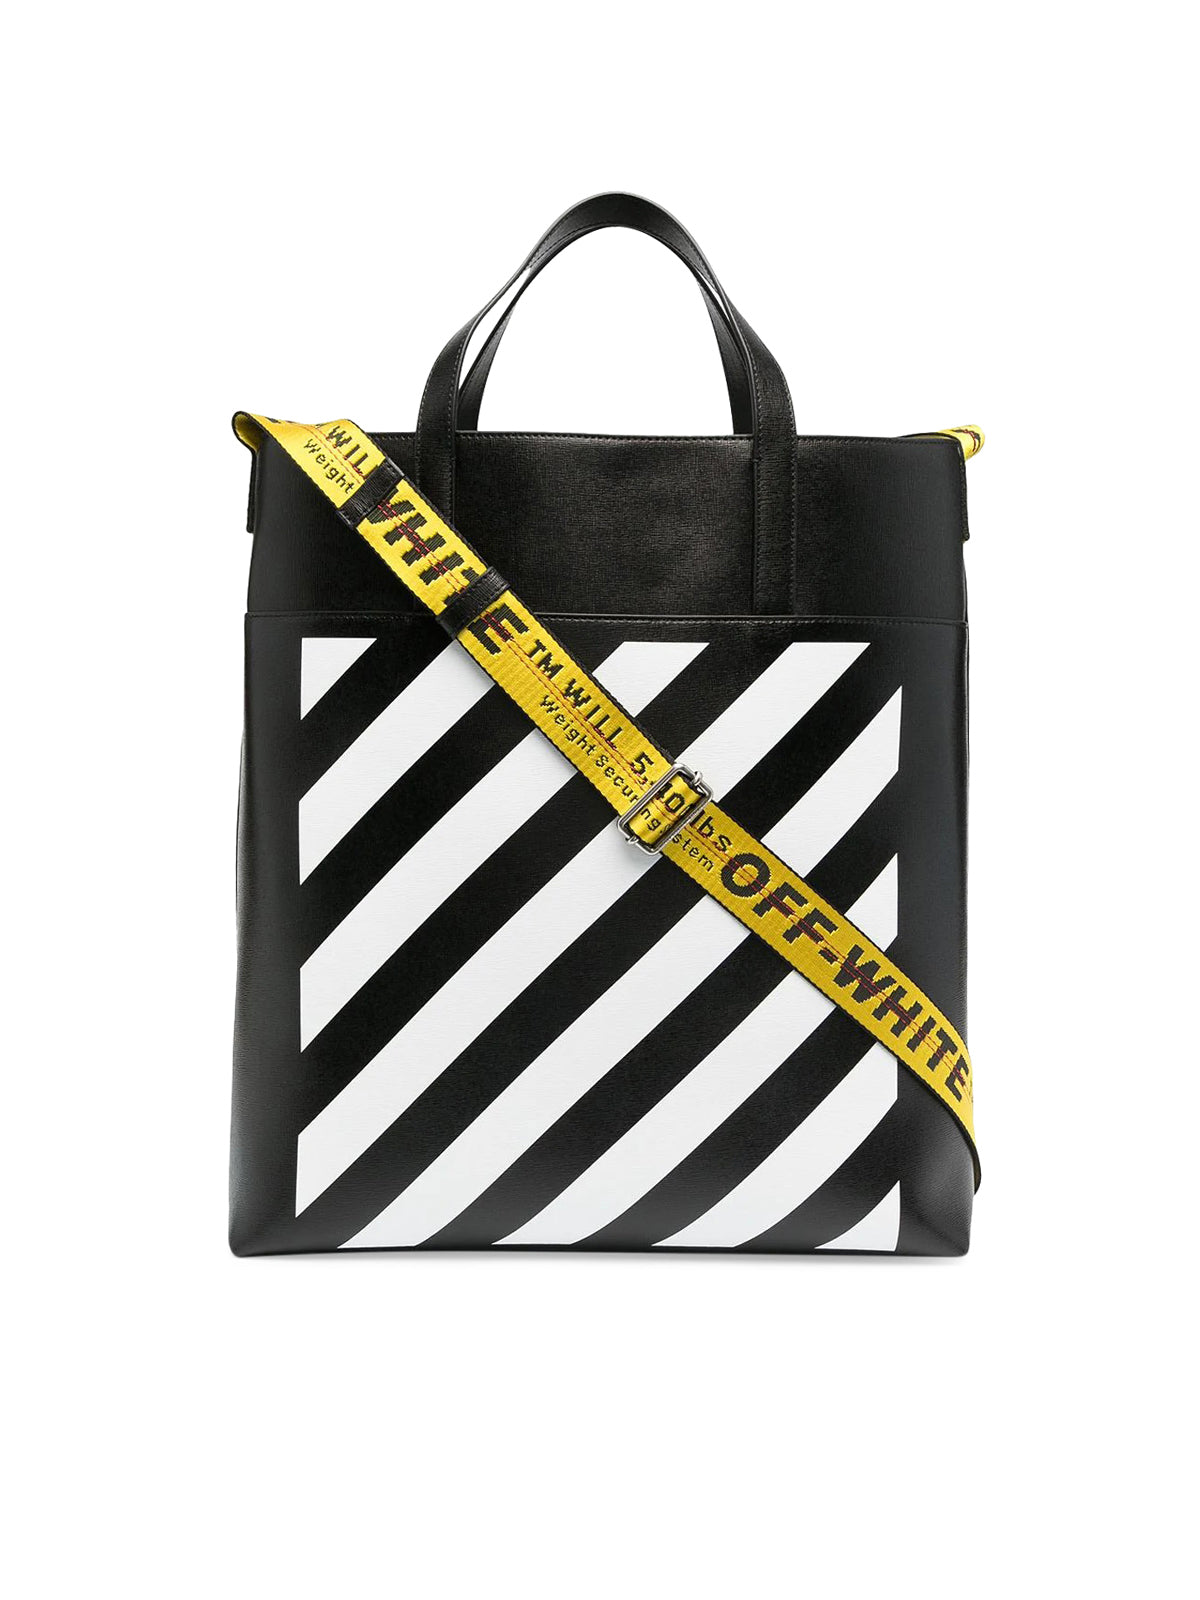 logo-tape detail tote bag